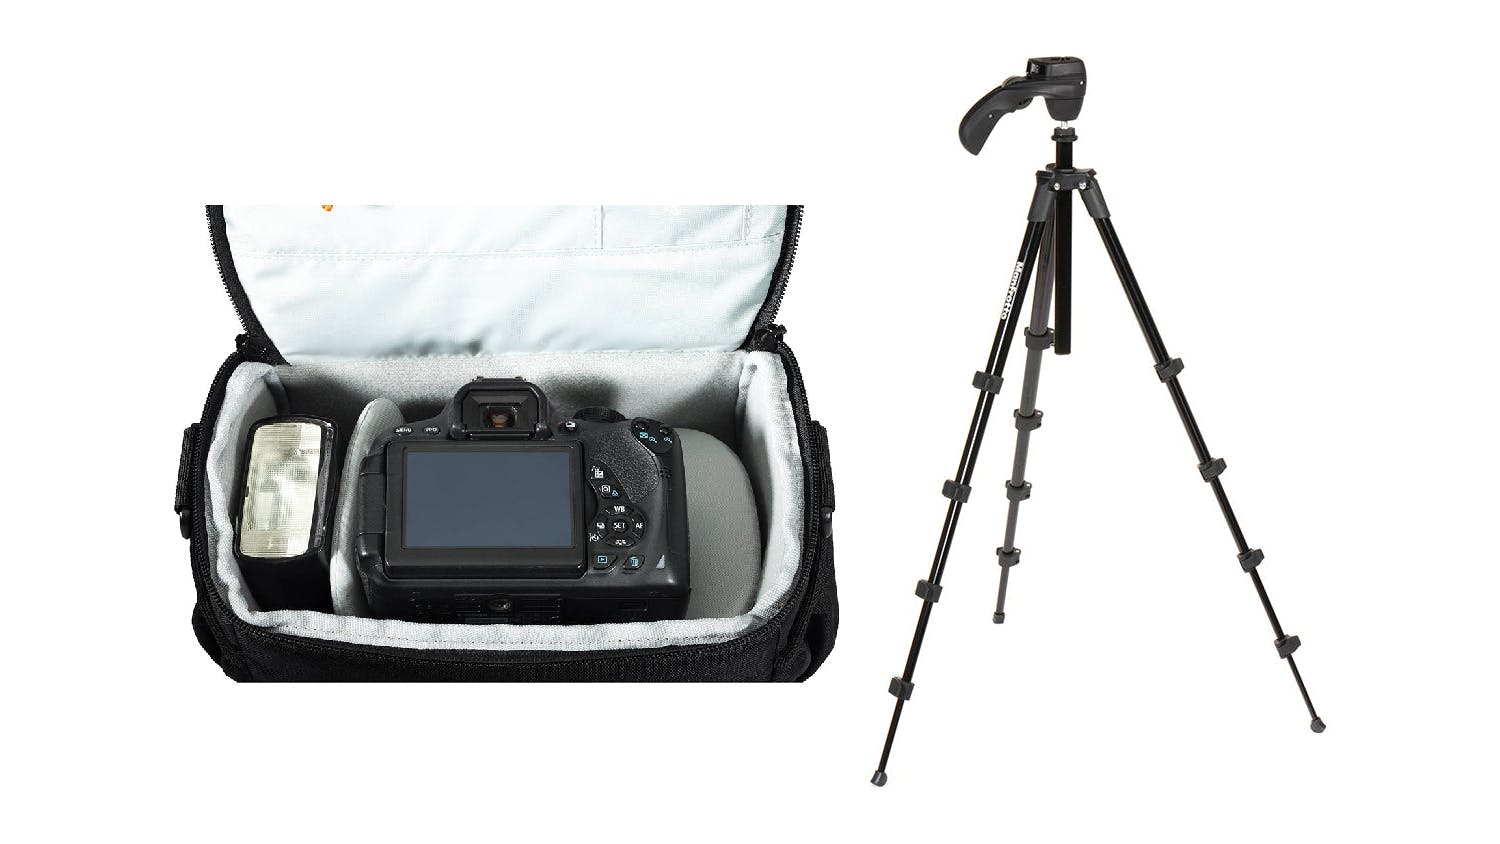 Lowepro Adventure SH160 II + Manfrotto Compact Action Tripod Bundle